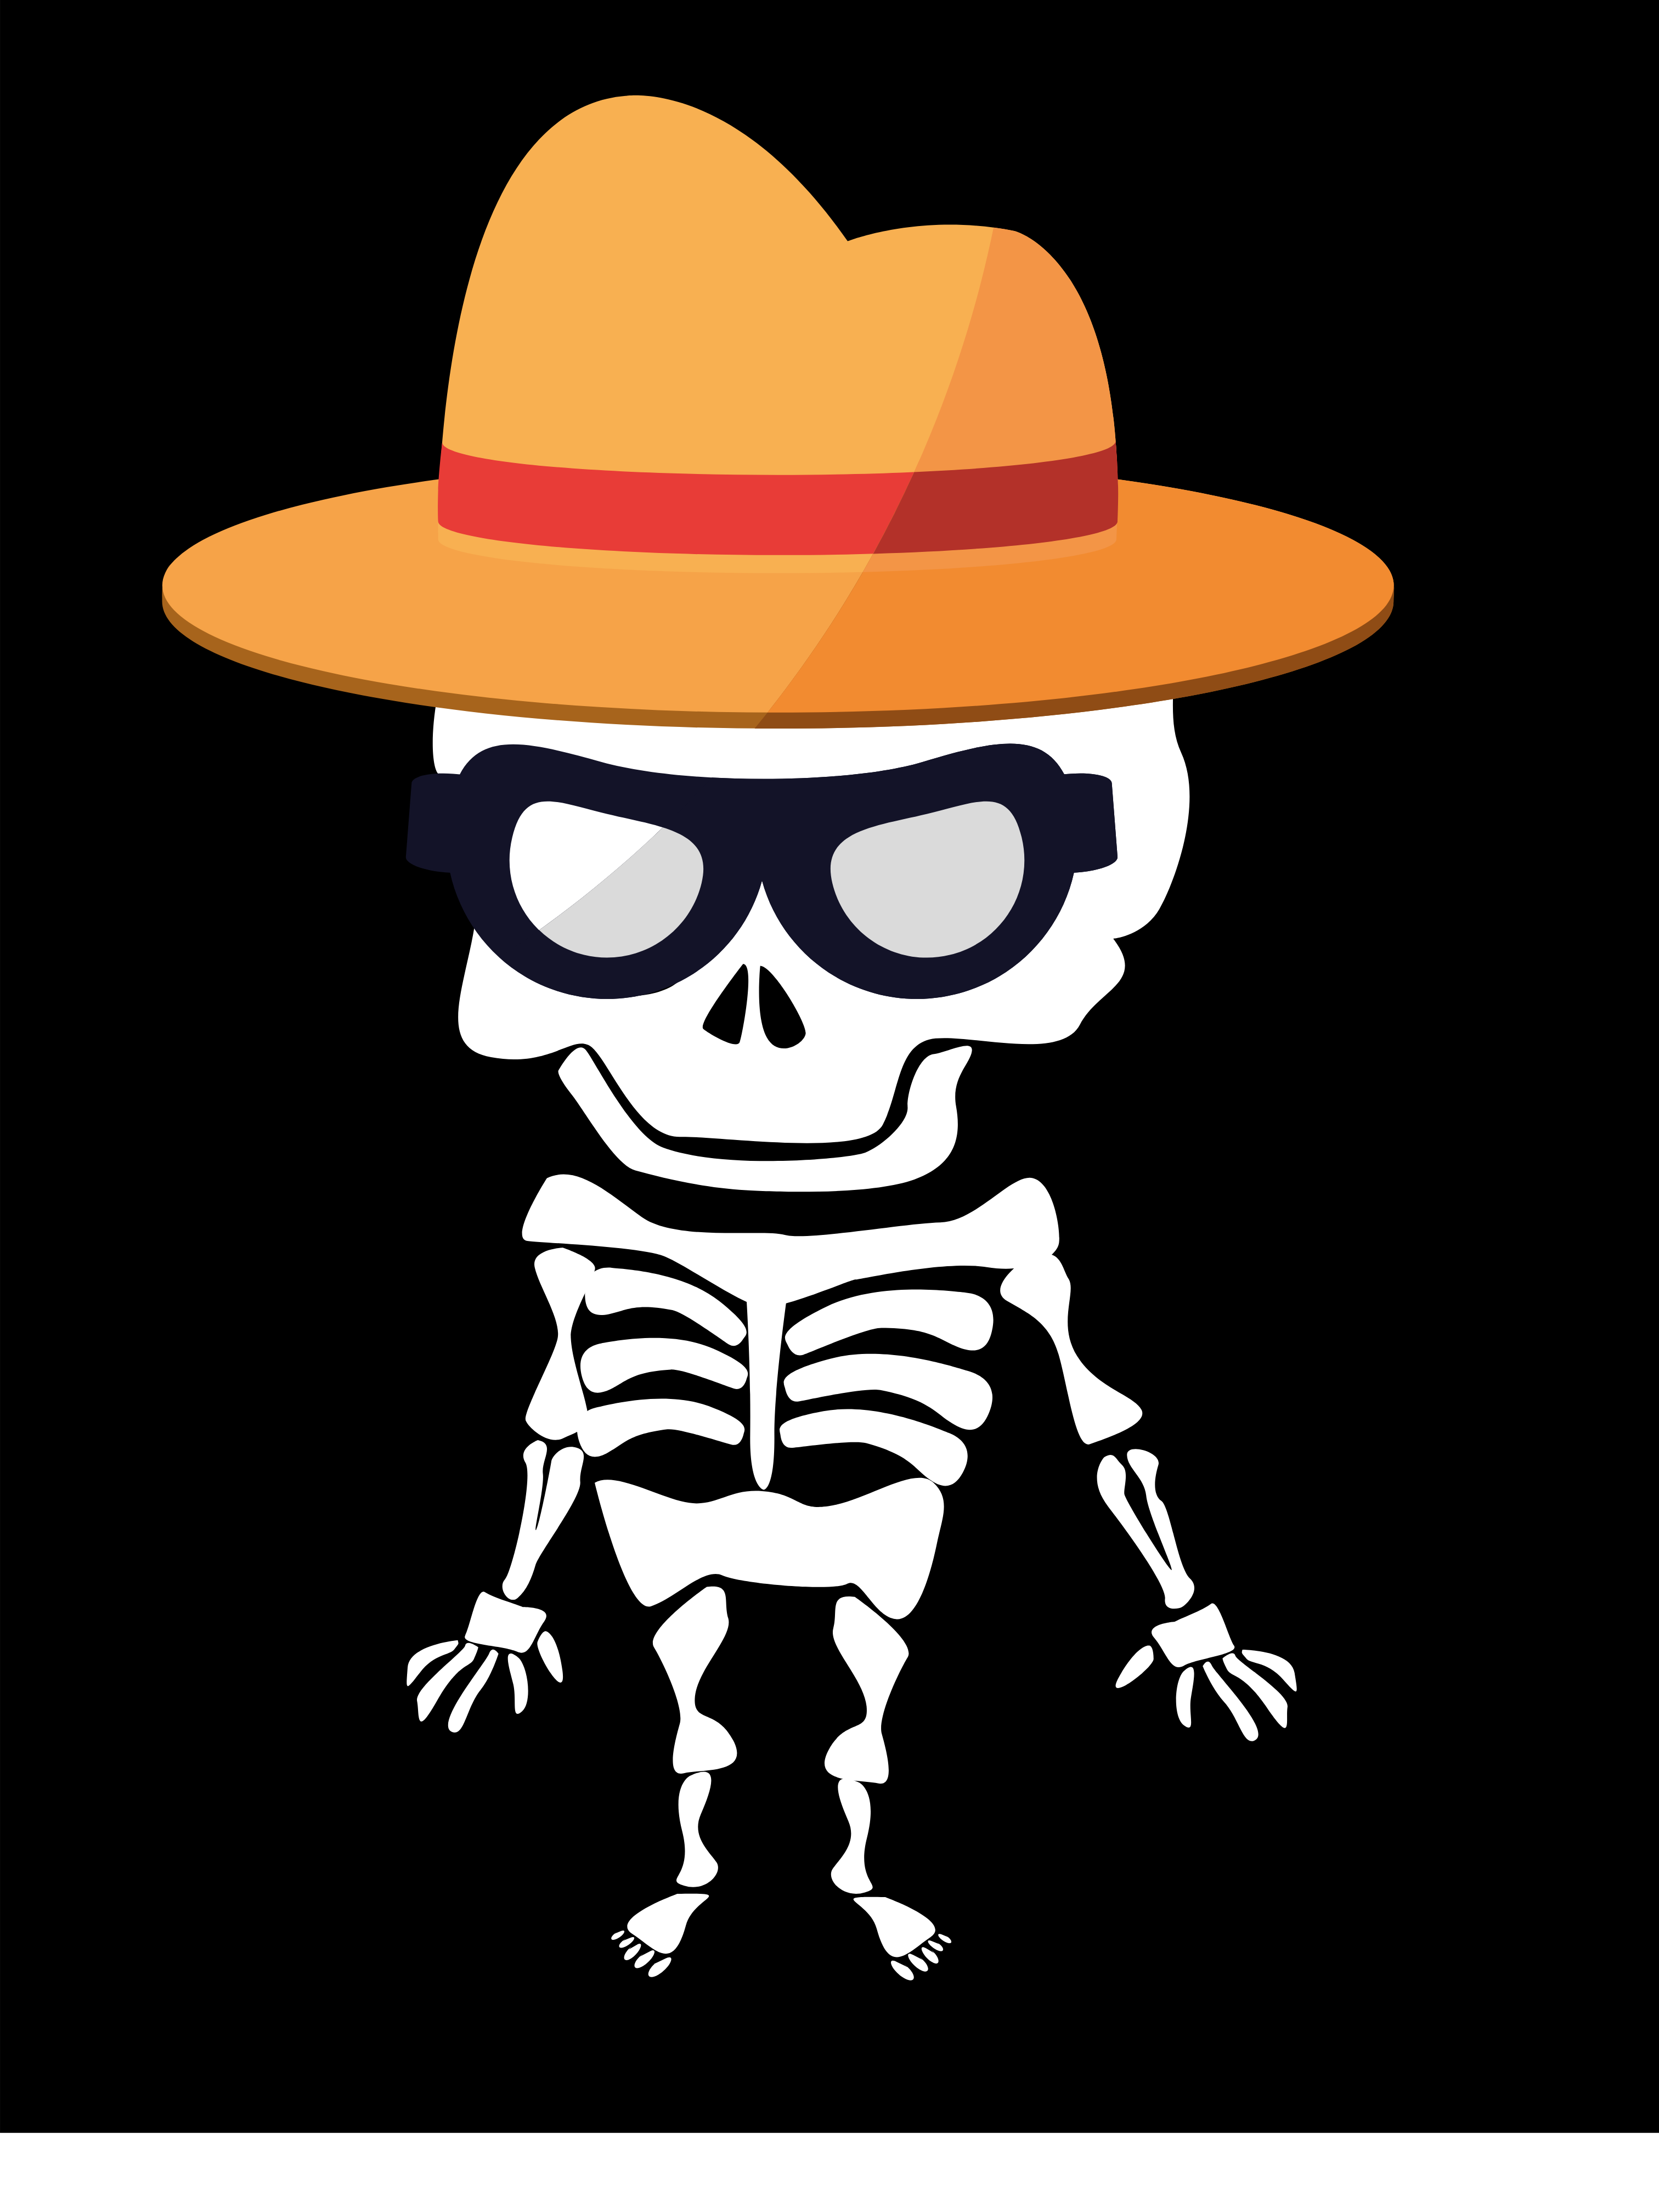 Online Event: Get a Clue! Spooky Mysteries to Solve